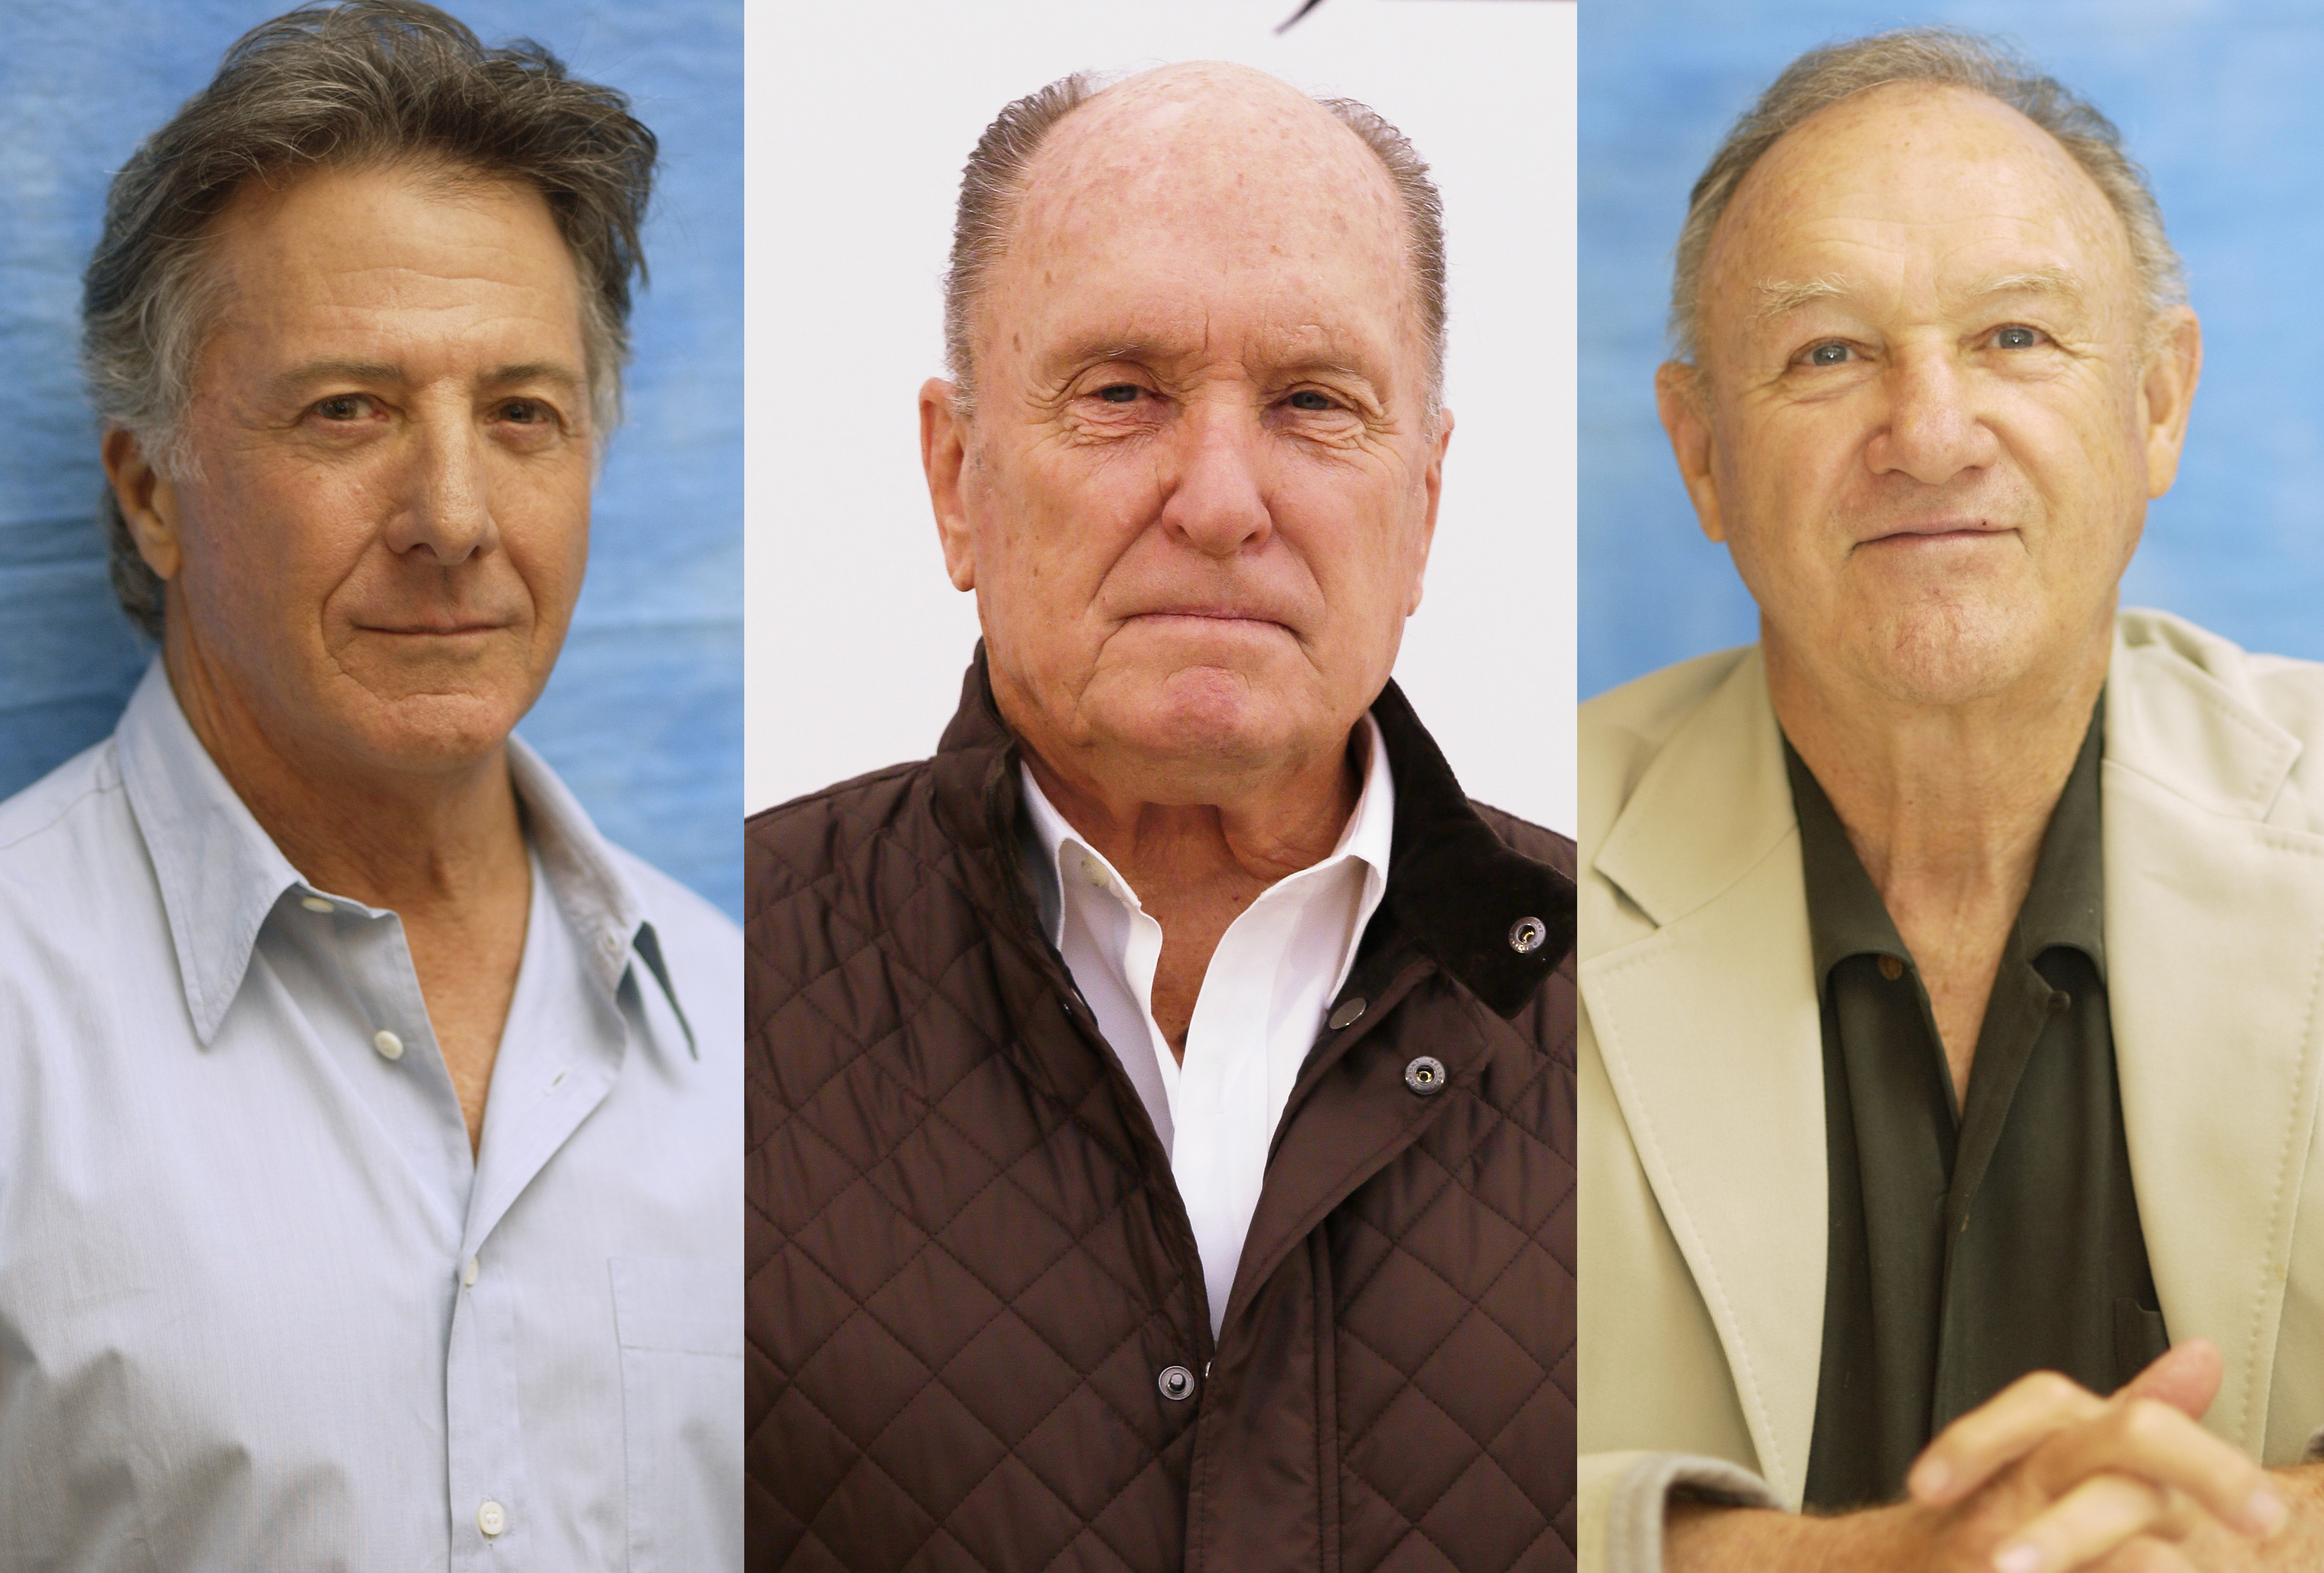 The triple crown: Dustin Hoffman, Robert Duvall and Gene Hackman. In the late 1950s, Hackman helped Hoffman find a place to stay in New York, and his new roommate was Duvall.